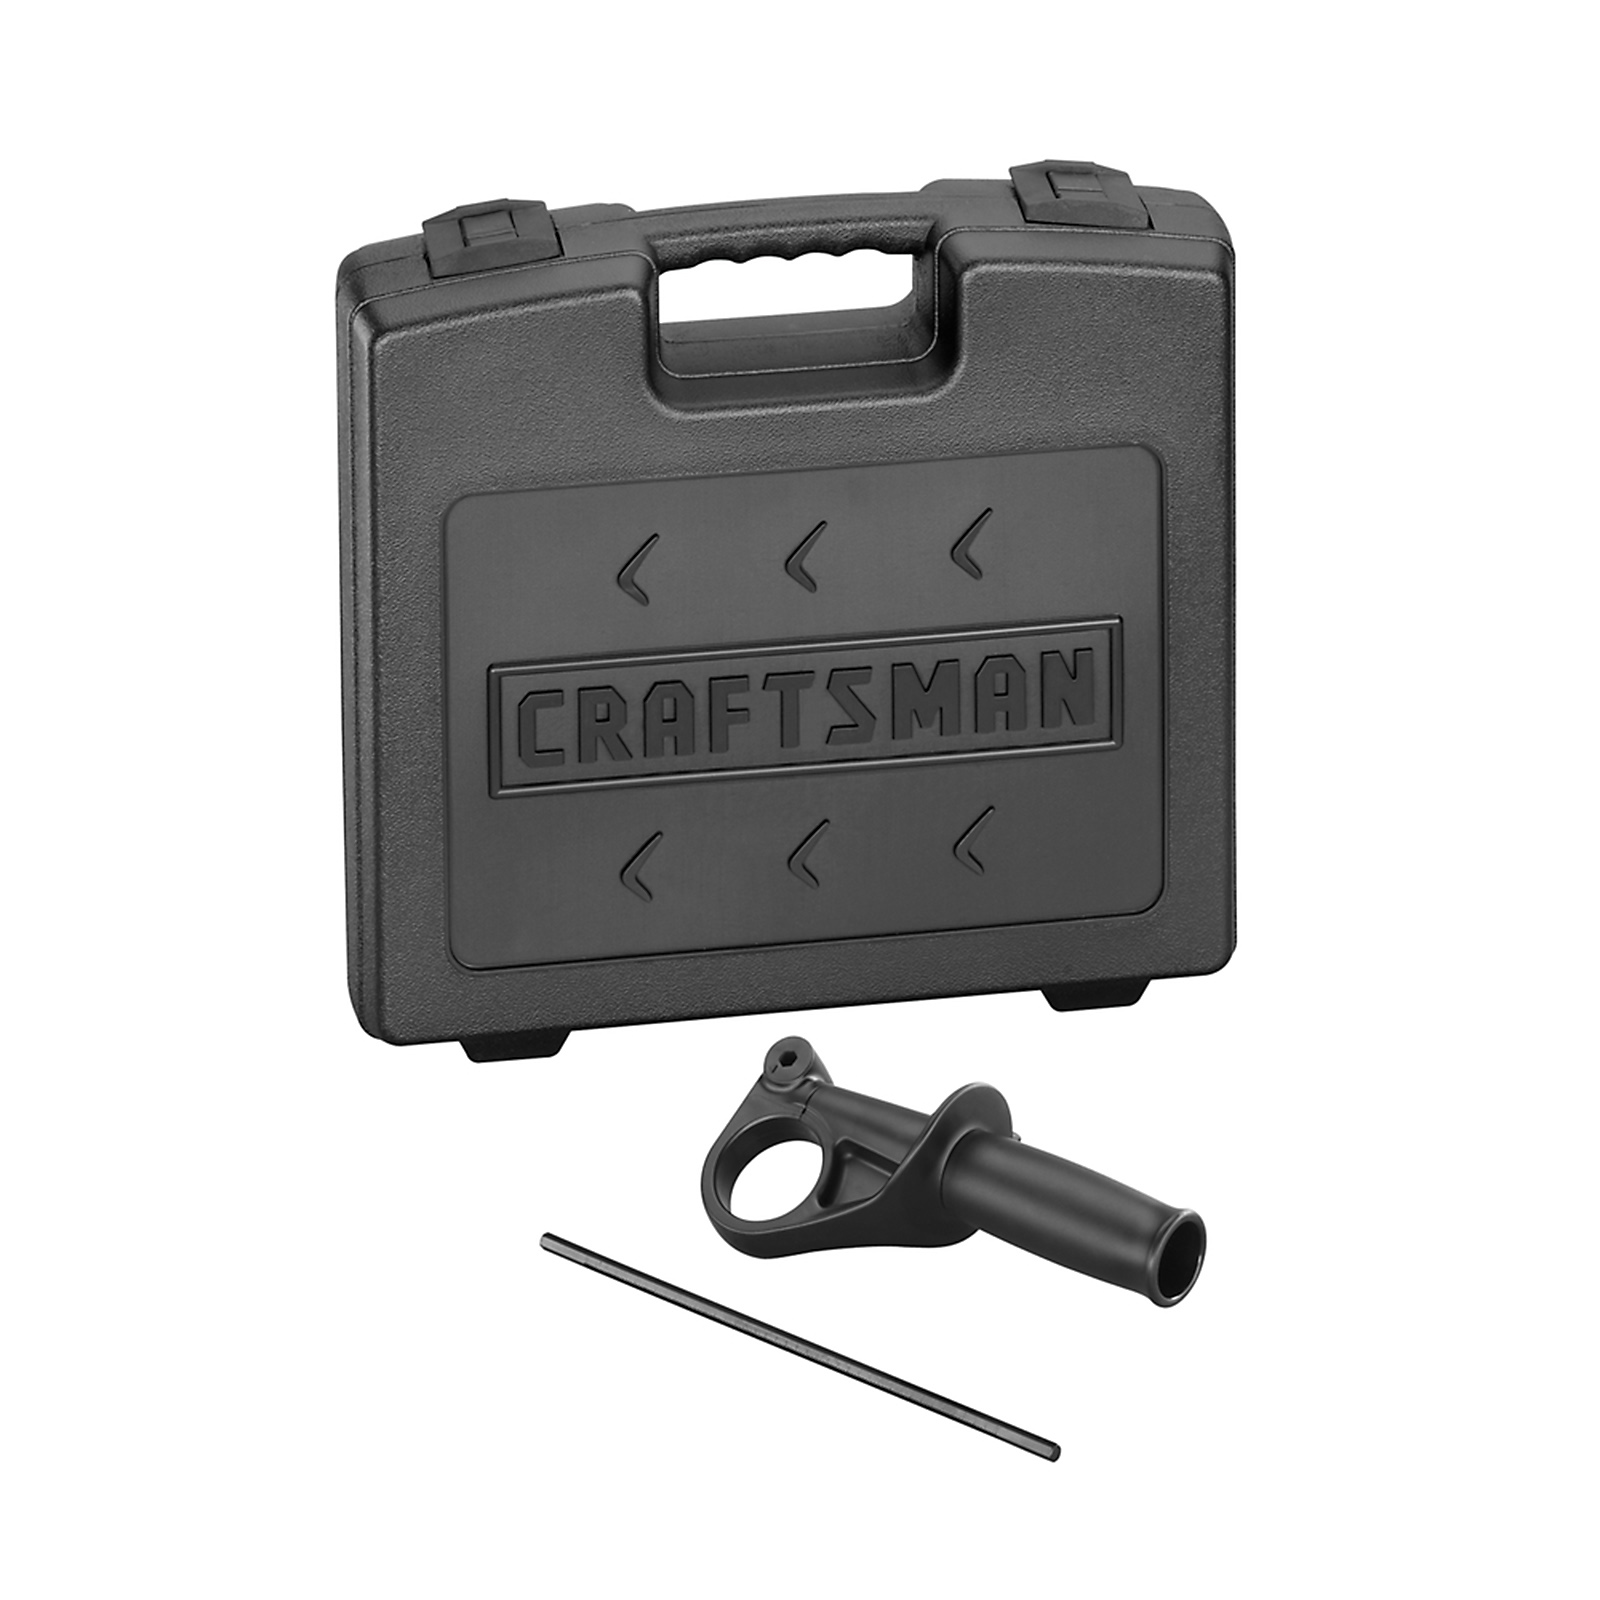 Craftsman 1/2 in. Corded Hammer Drill